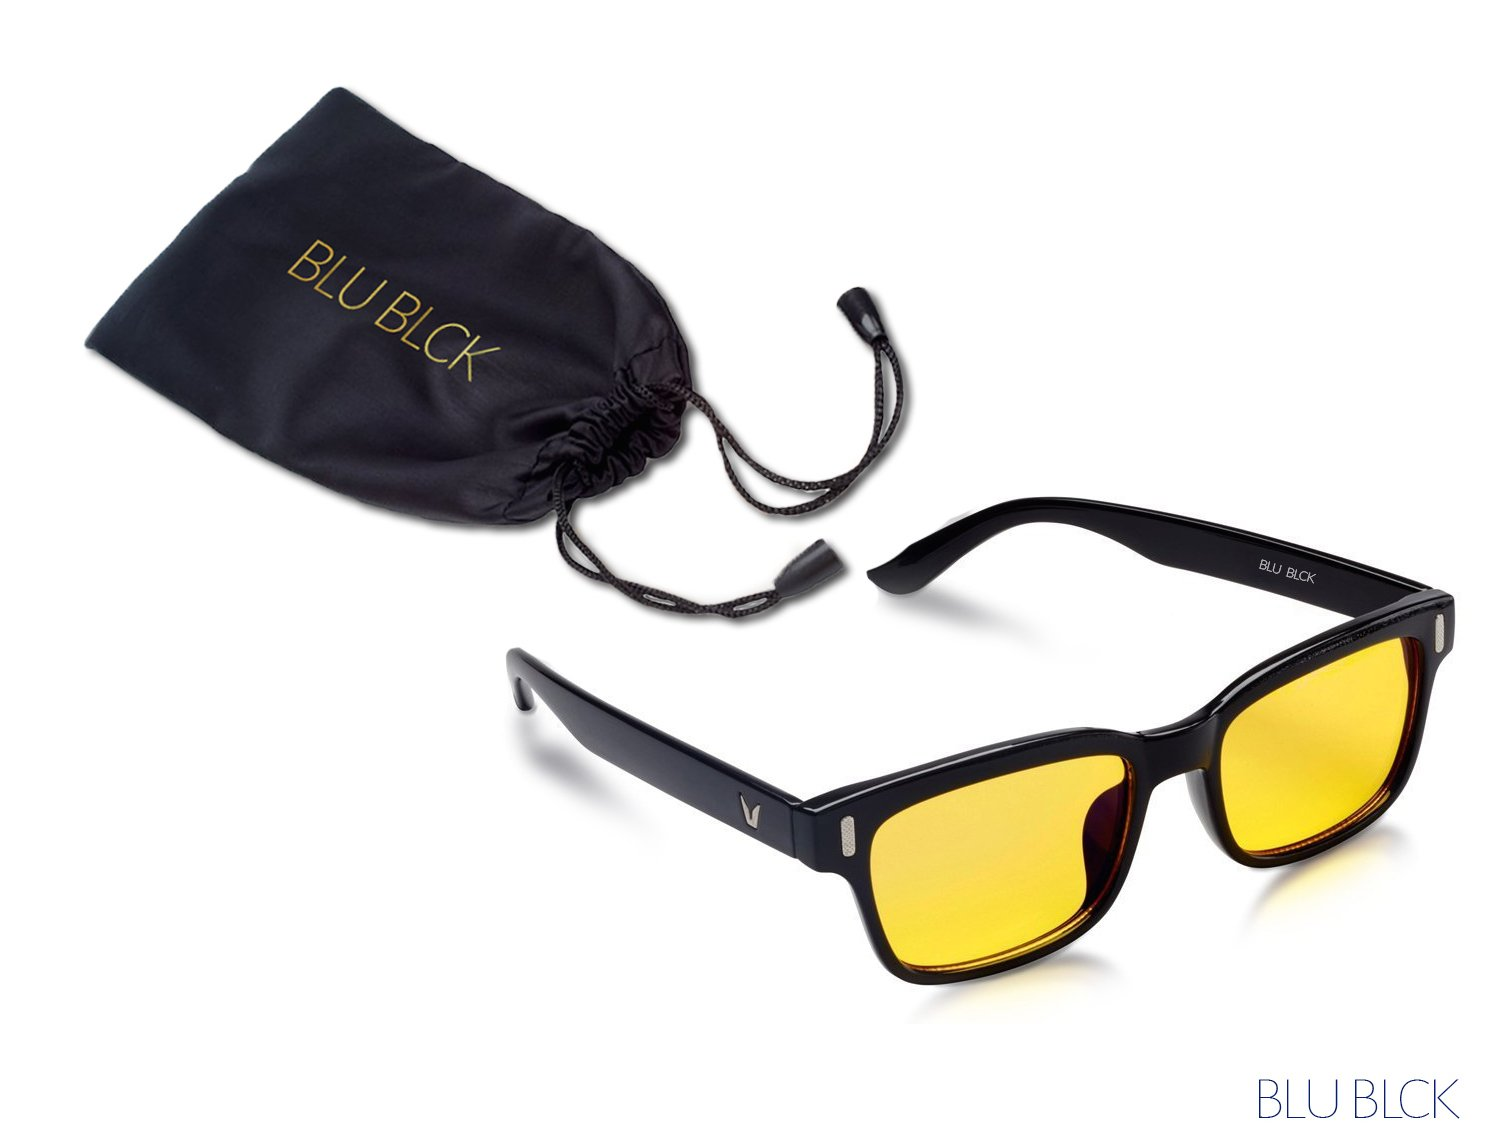 Blue-light Blocking Glasses help to REDUCE artificial blue light to help improve sleep, eyestrains from Cellphone, Computer LCD and LED, Unisex Glasses (Black Frame)